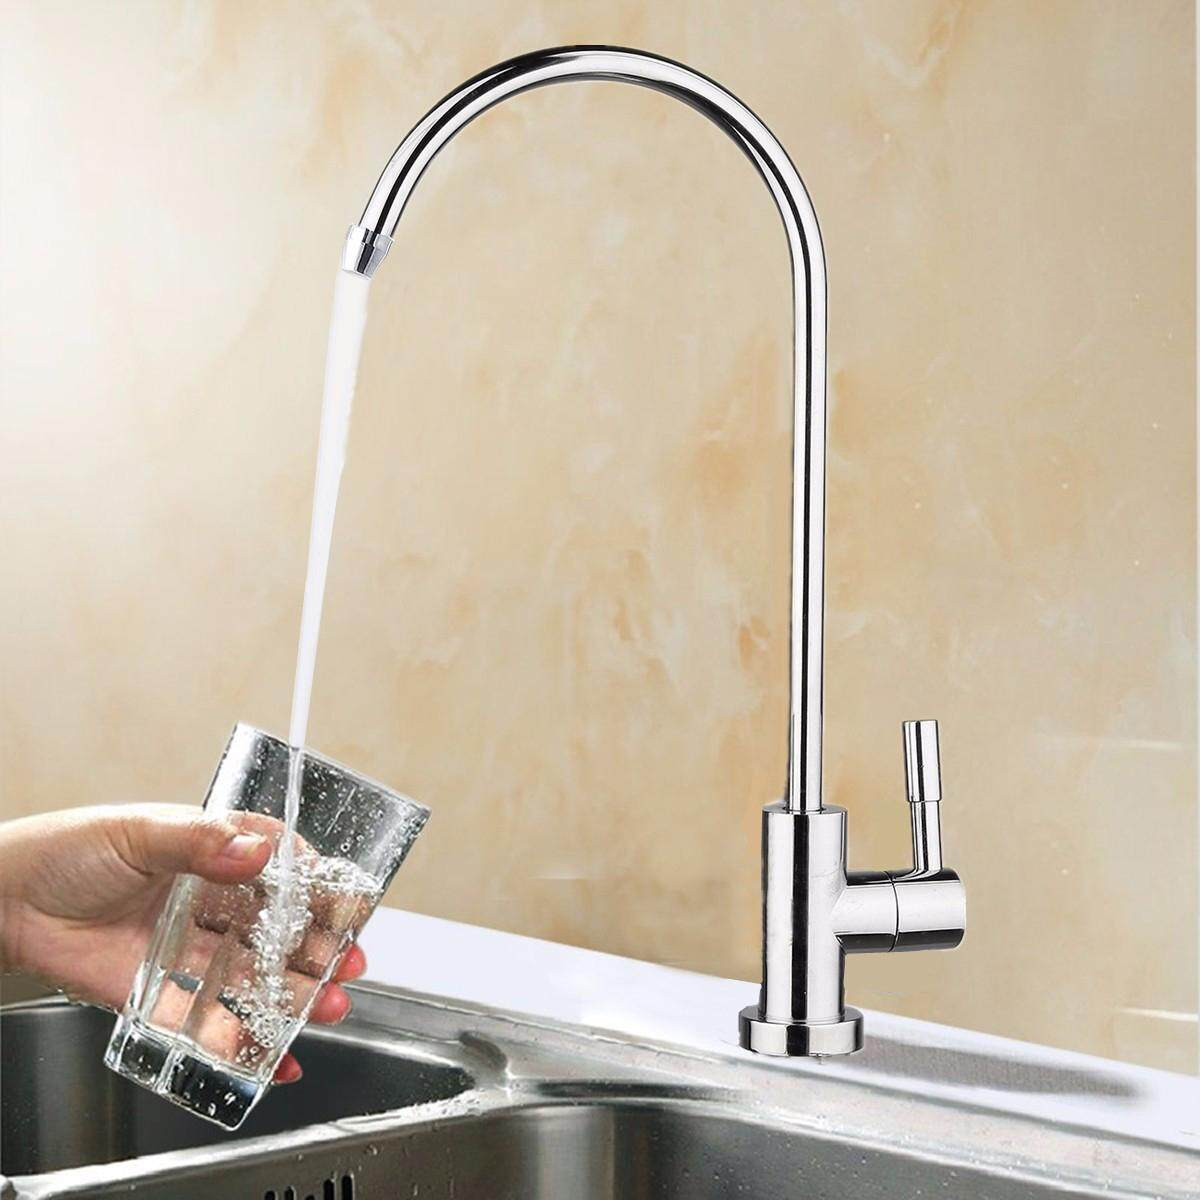 1/4 Chrome Drinking Ro Water Filter Faucet Finish Reverse Osmosis Sink Kitchen By Freebang.